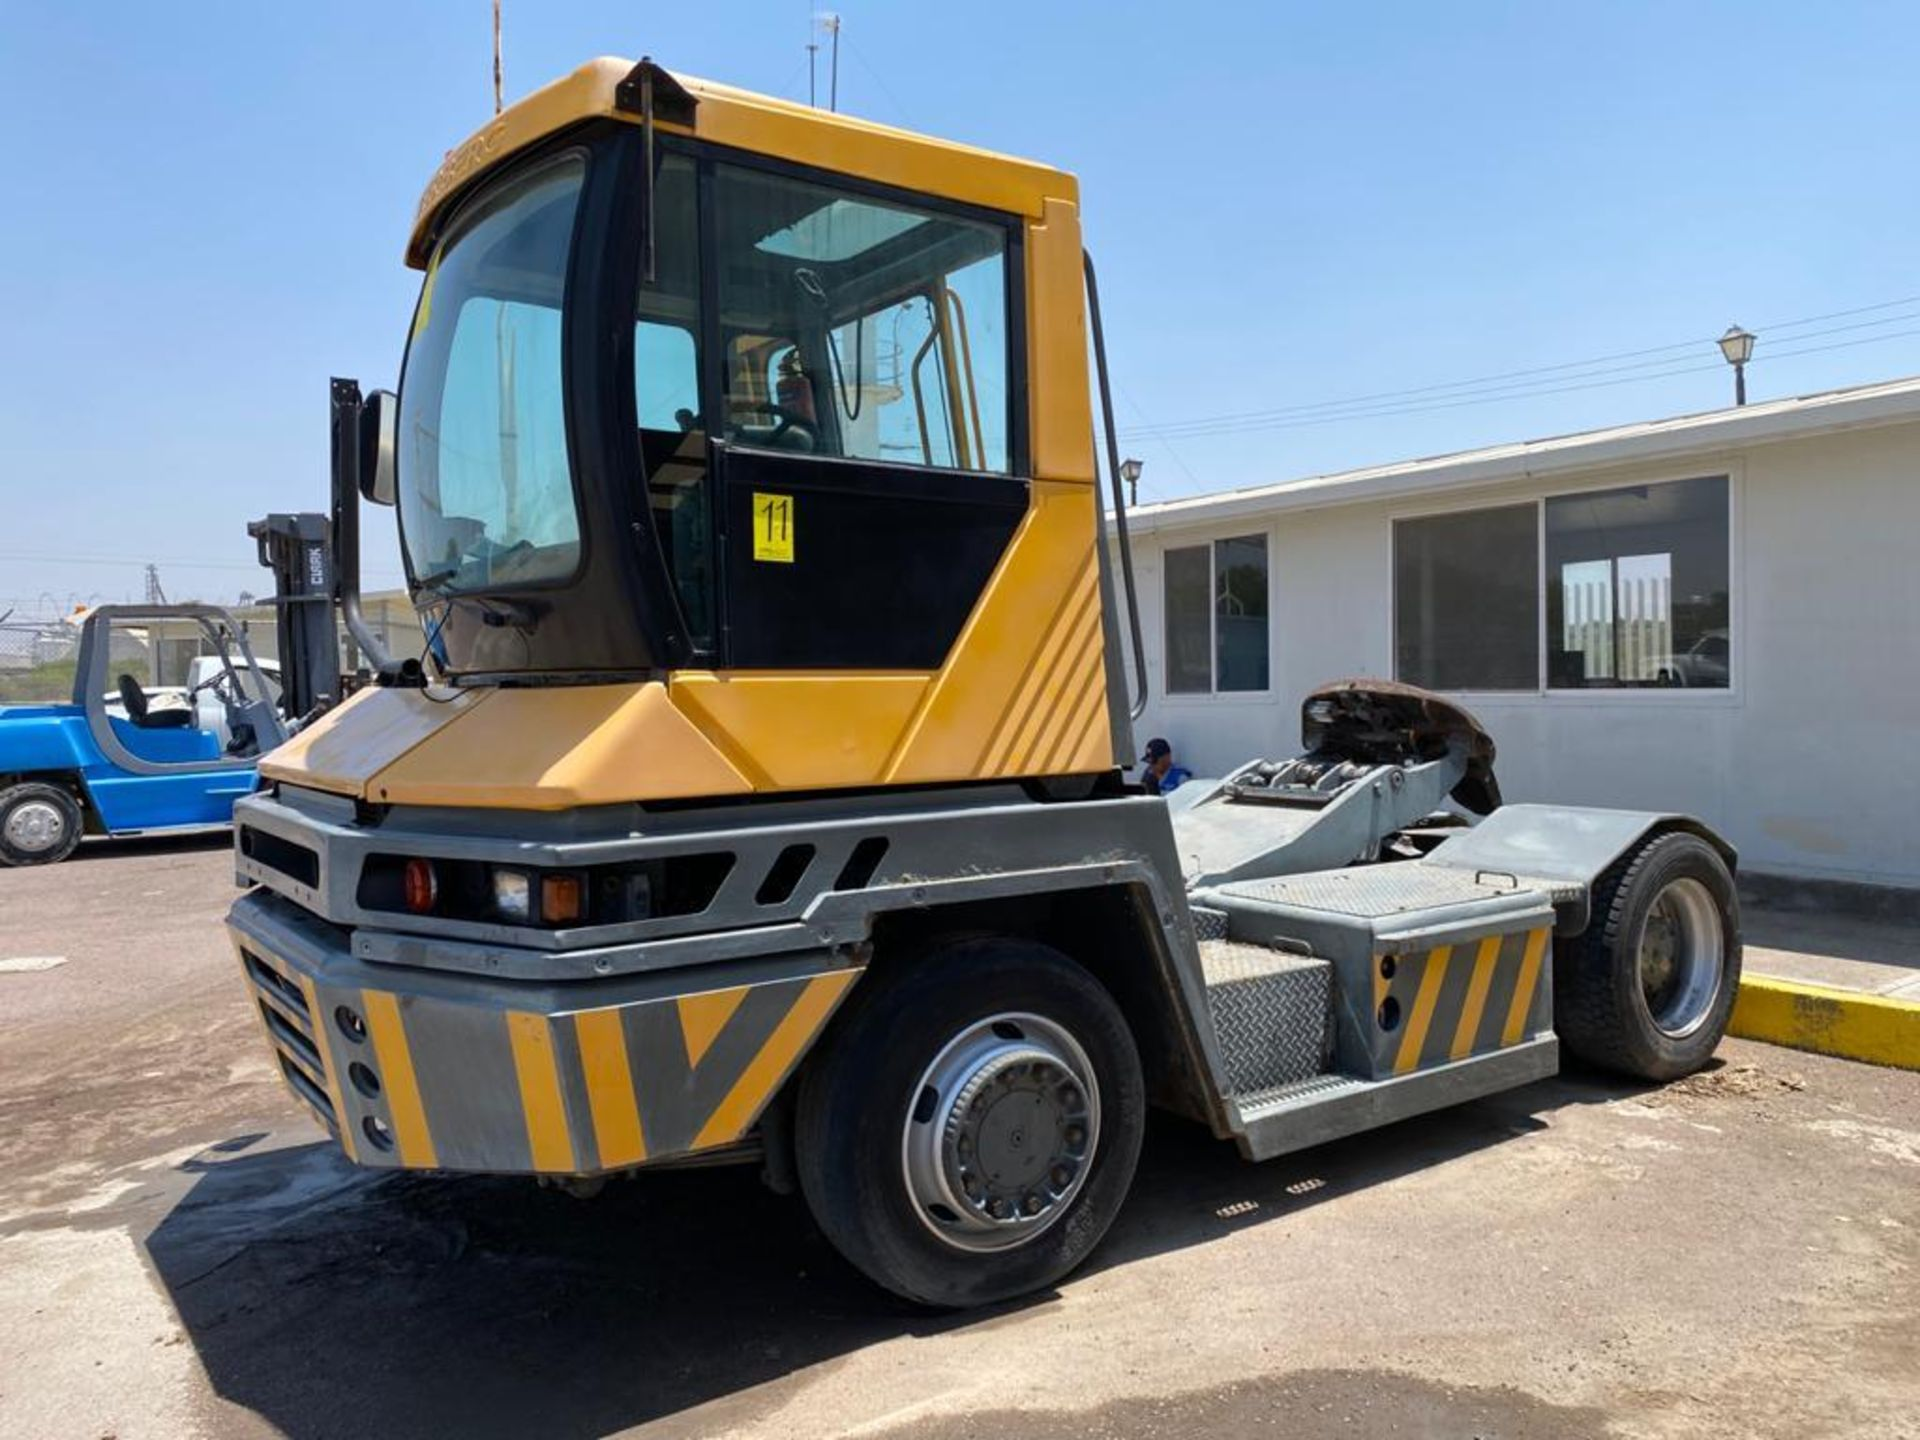 Terberg Capacity 2002 Terminal Tractor, automatic transmission, with Volvo motor - Image 7 of 57